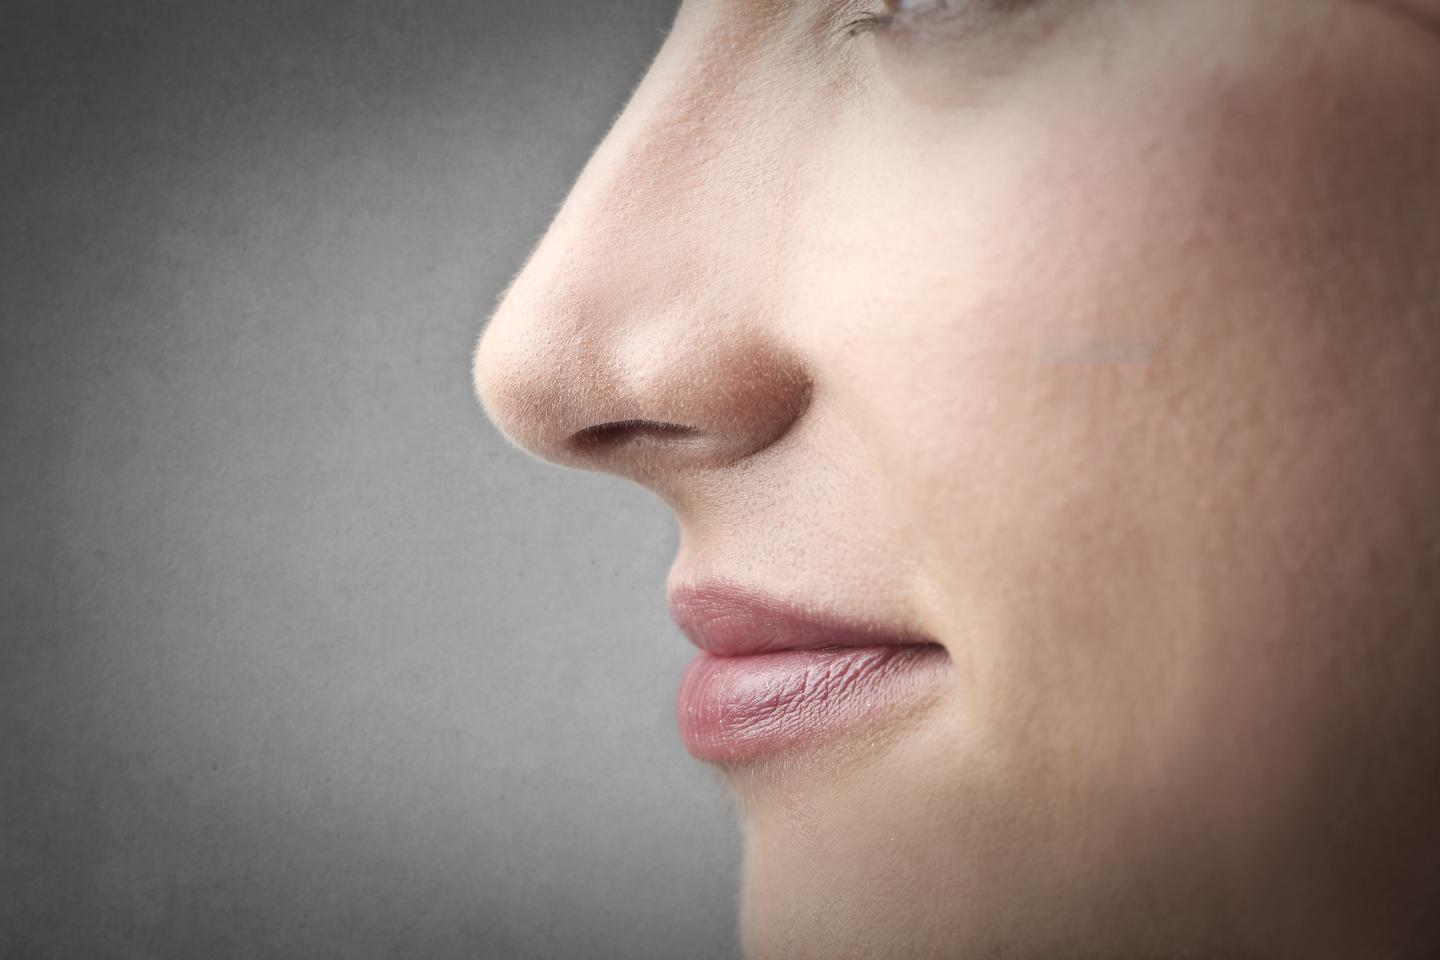 A new method for growing and bioprinting cartilage could help patch up noses damaged by skin cancer